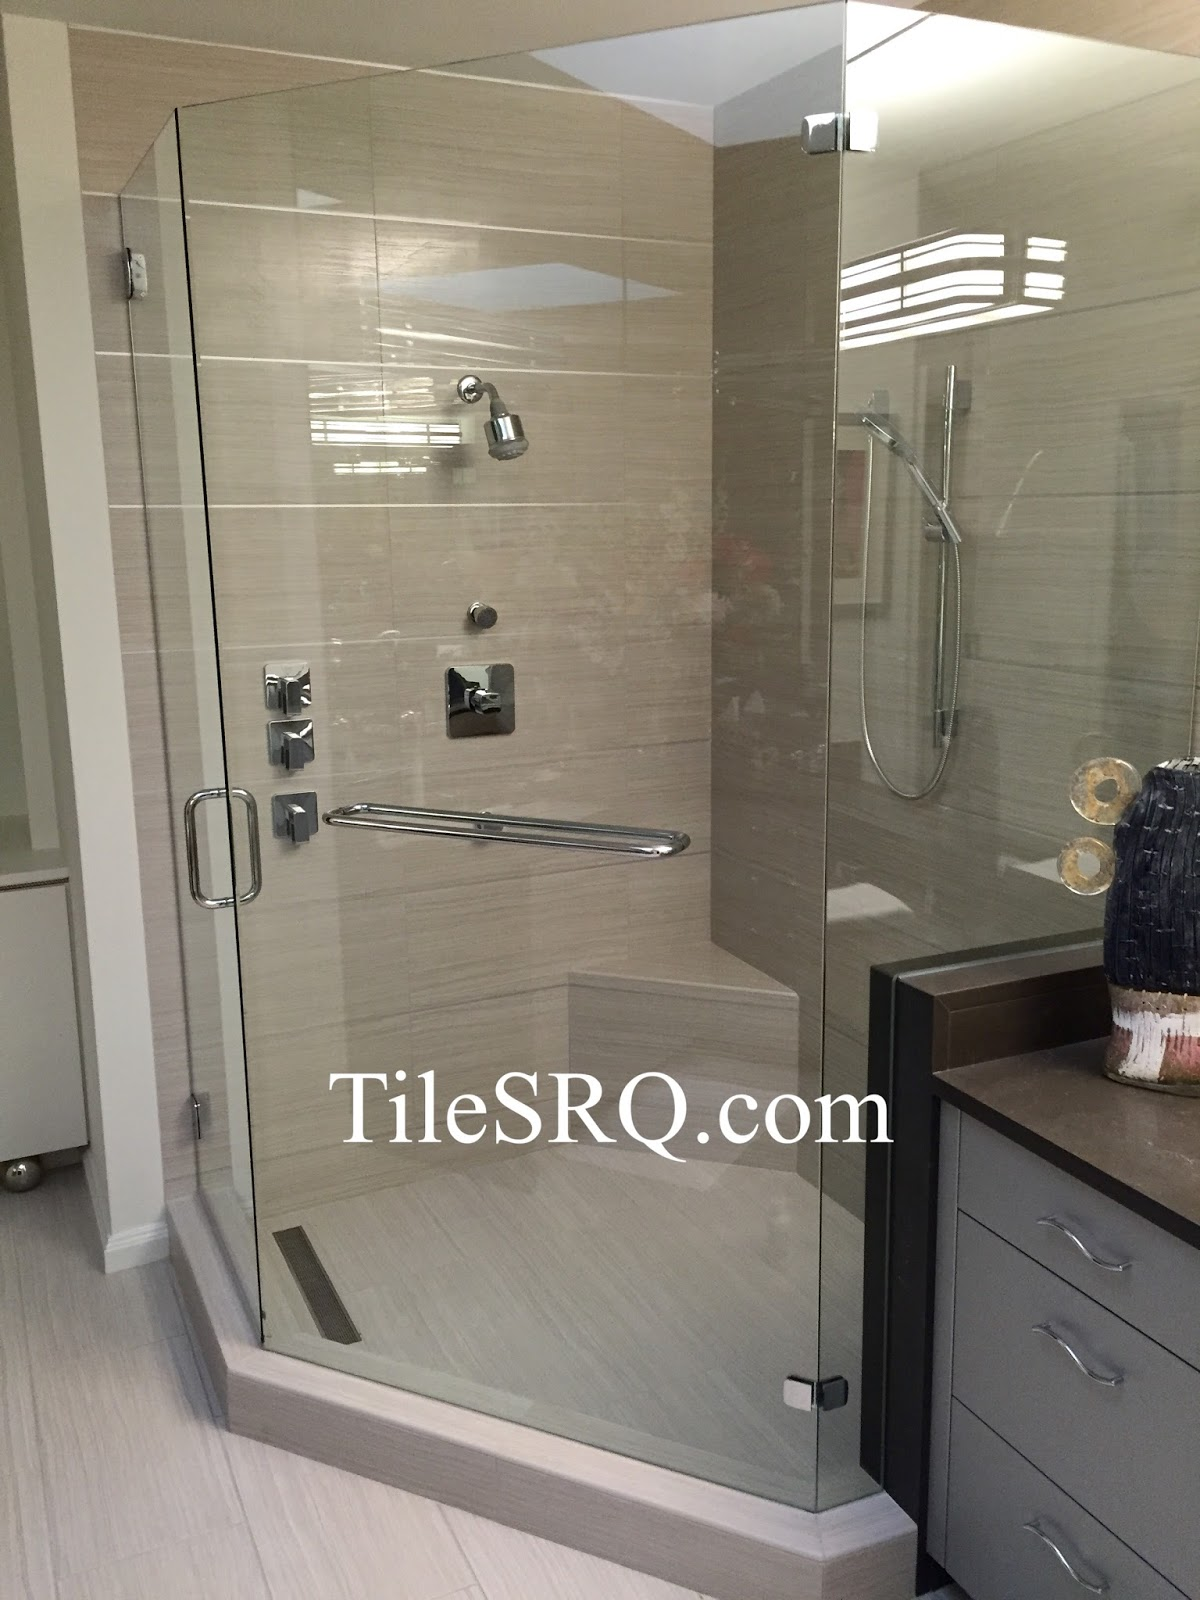 Decorating chic white tile wall with schluter strip for wall chic glass shower door with schluter strip matched with tile wall and floor for bathroom decor amipublicfo Images